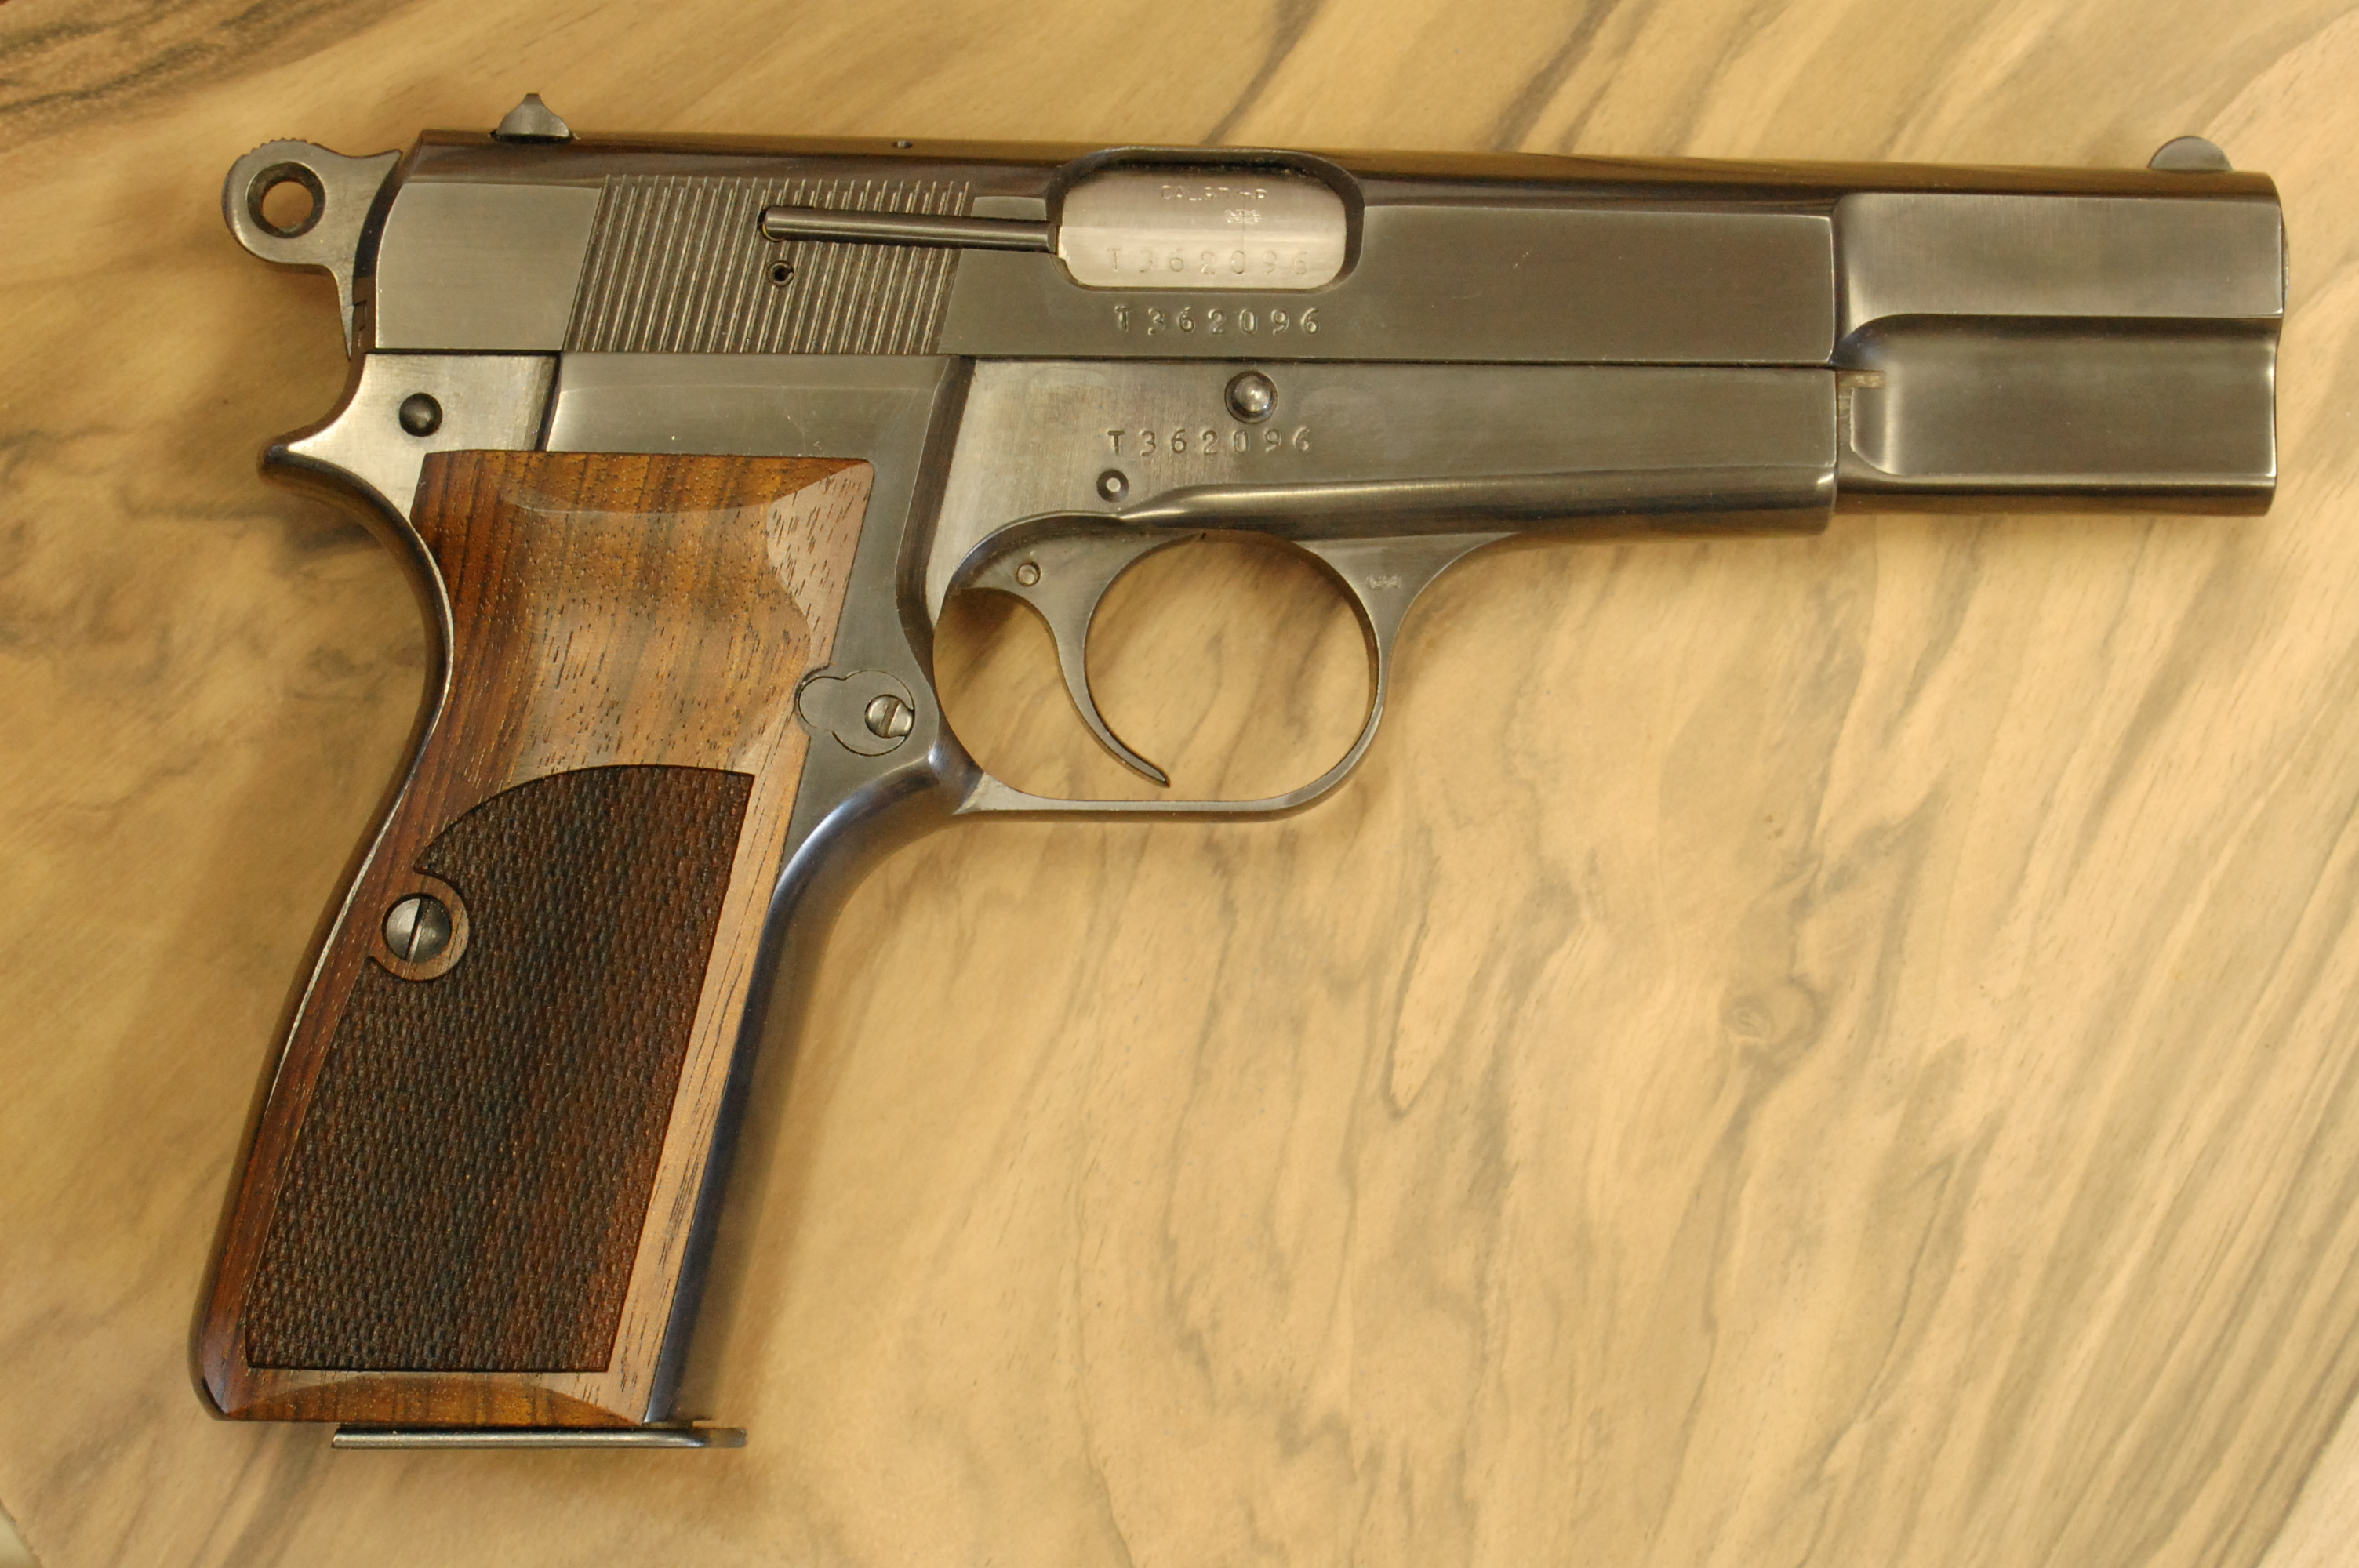 BROWNING Hi-power GRIPS (checkered) - full size